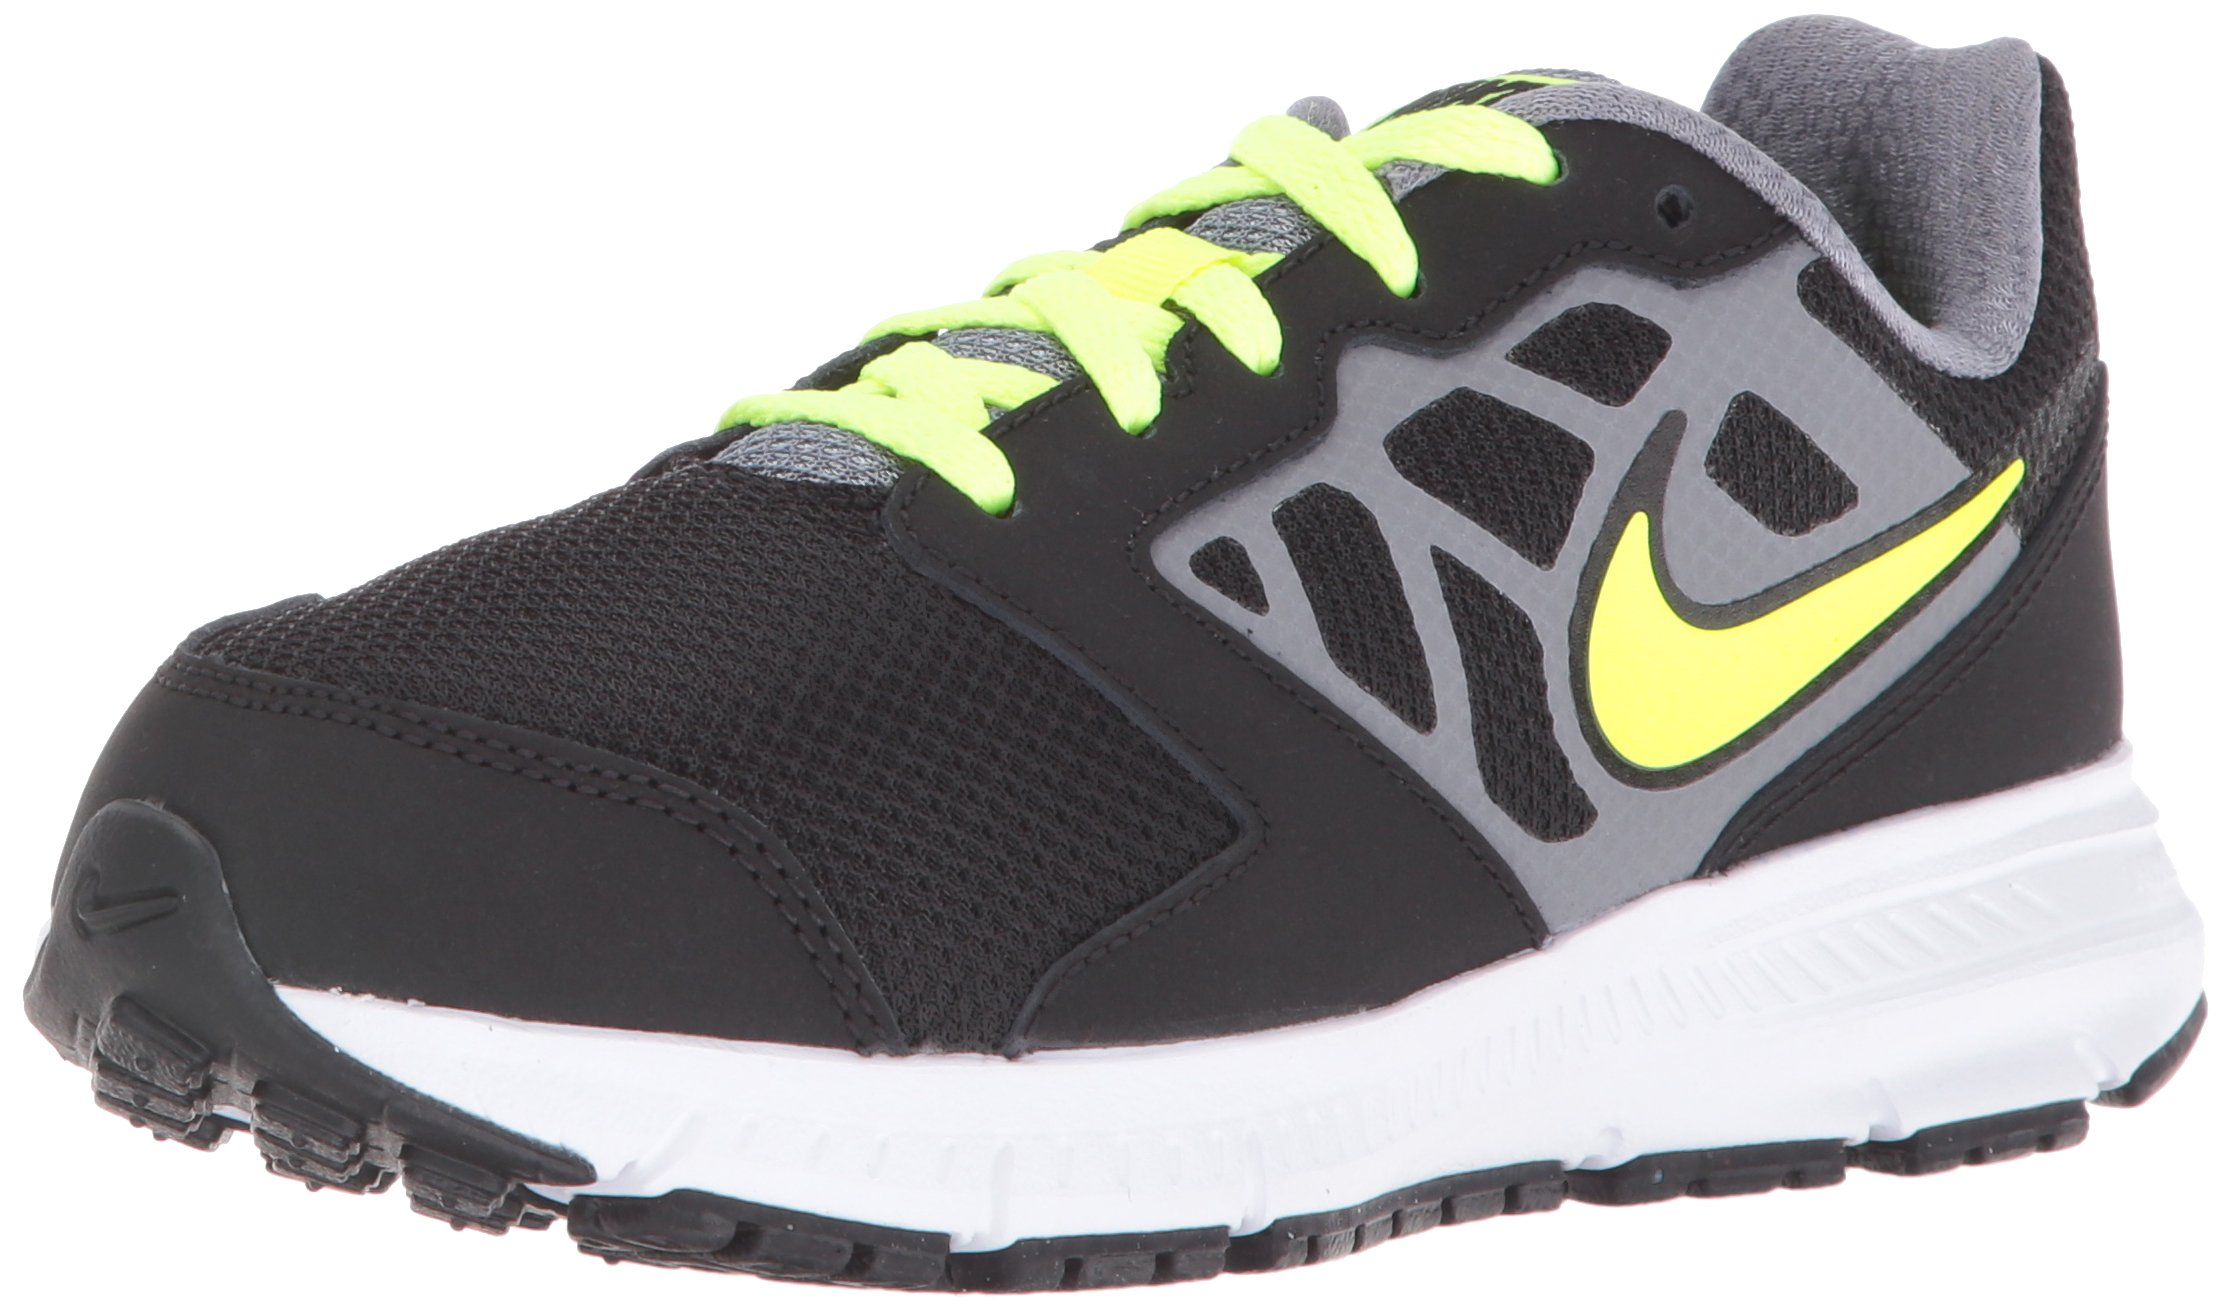 cheap for discount 04d60 62e32 Galleon - NIKE Boys  Downshifter 6 (GS PS) Running Shoe, Black Volt Cool  Grey Rio Teal, 2 M US Little Kid